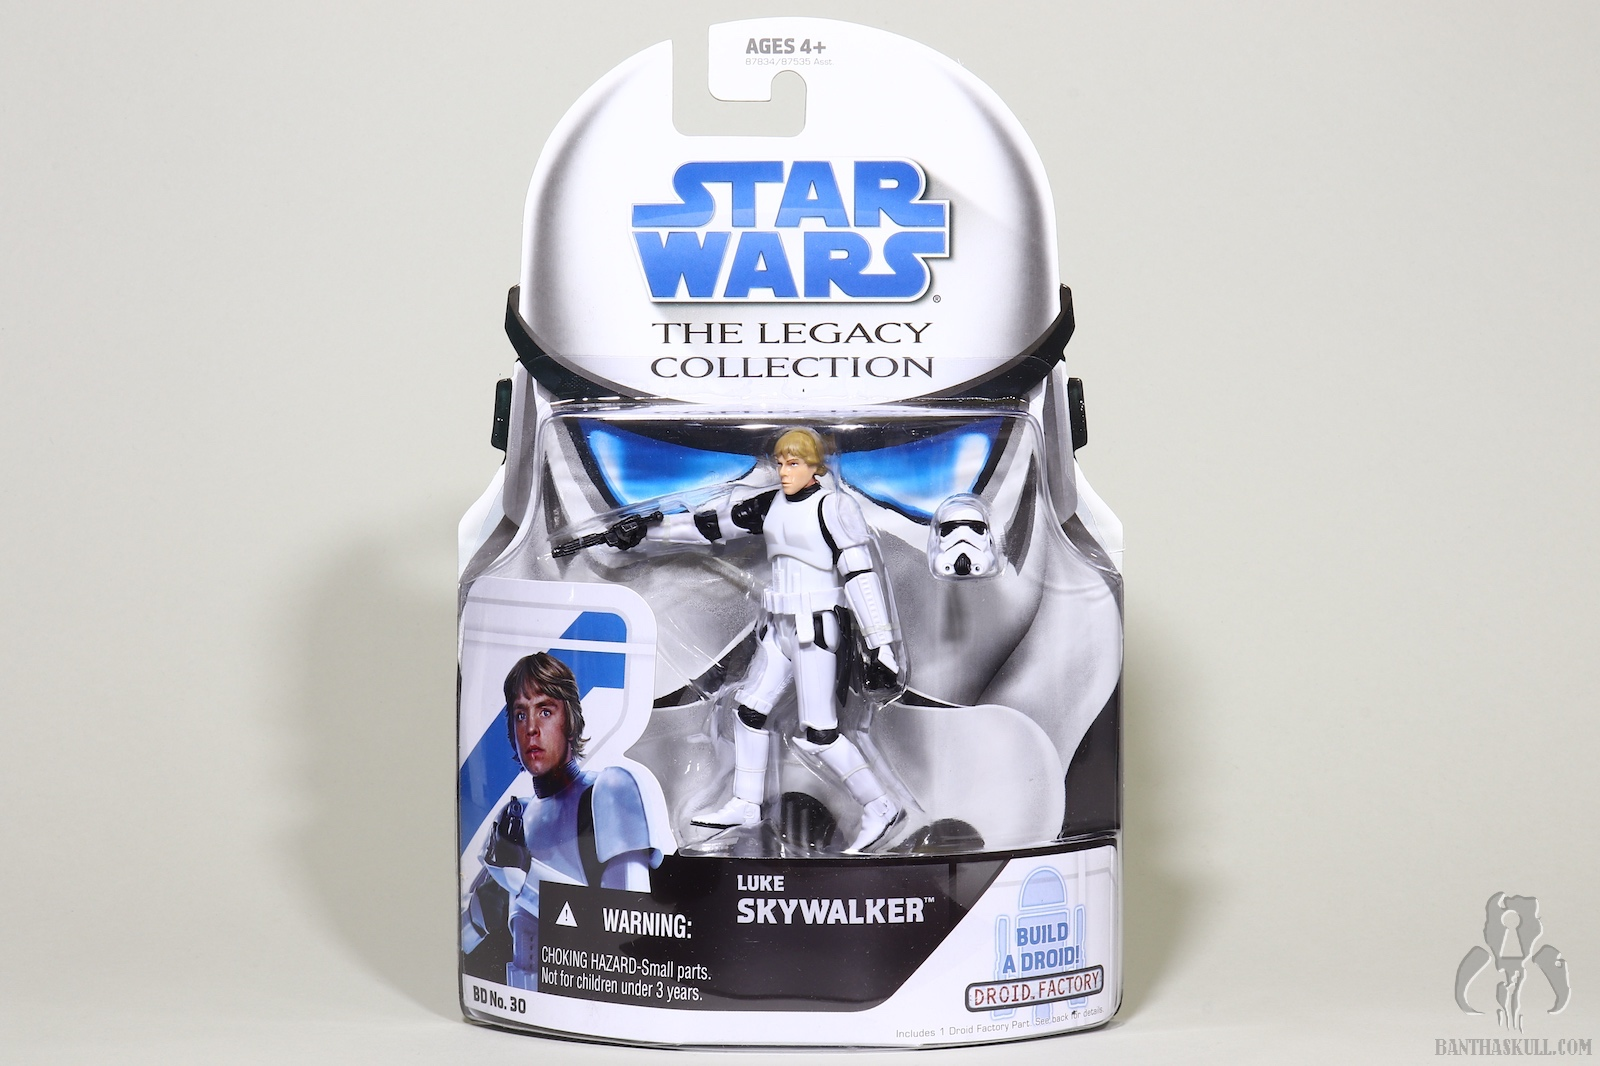 Hasbro Star Wars Legacy Collection Build-A-Droid Factory Action Figure BD No Stormtrooper 30 Luke Skywalker Hasbro Toys 87834